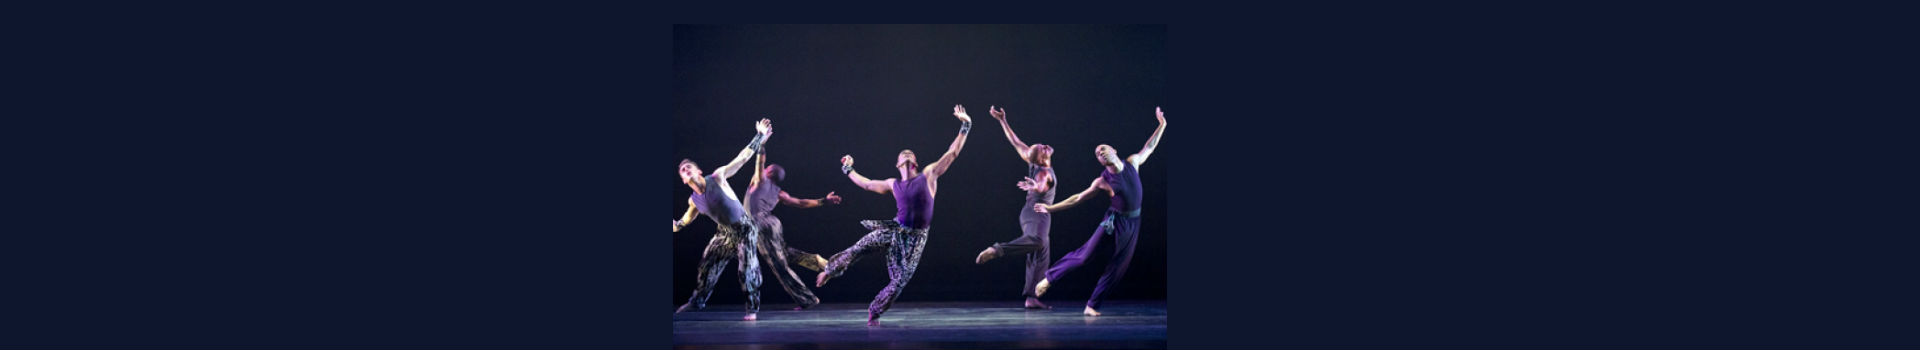 Alvin Ailey American Dance Theater - Programme A banner image